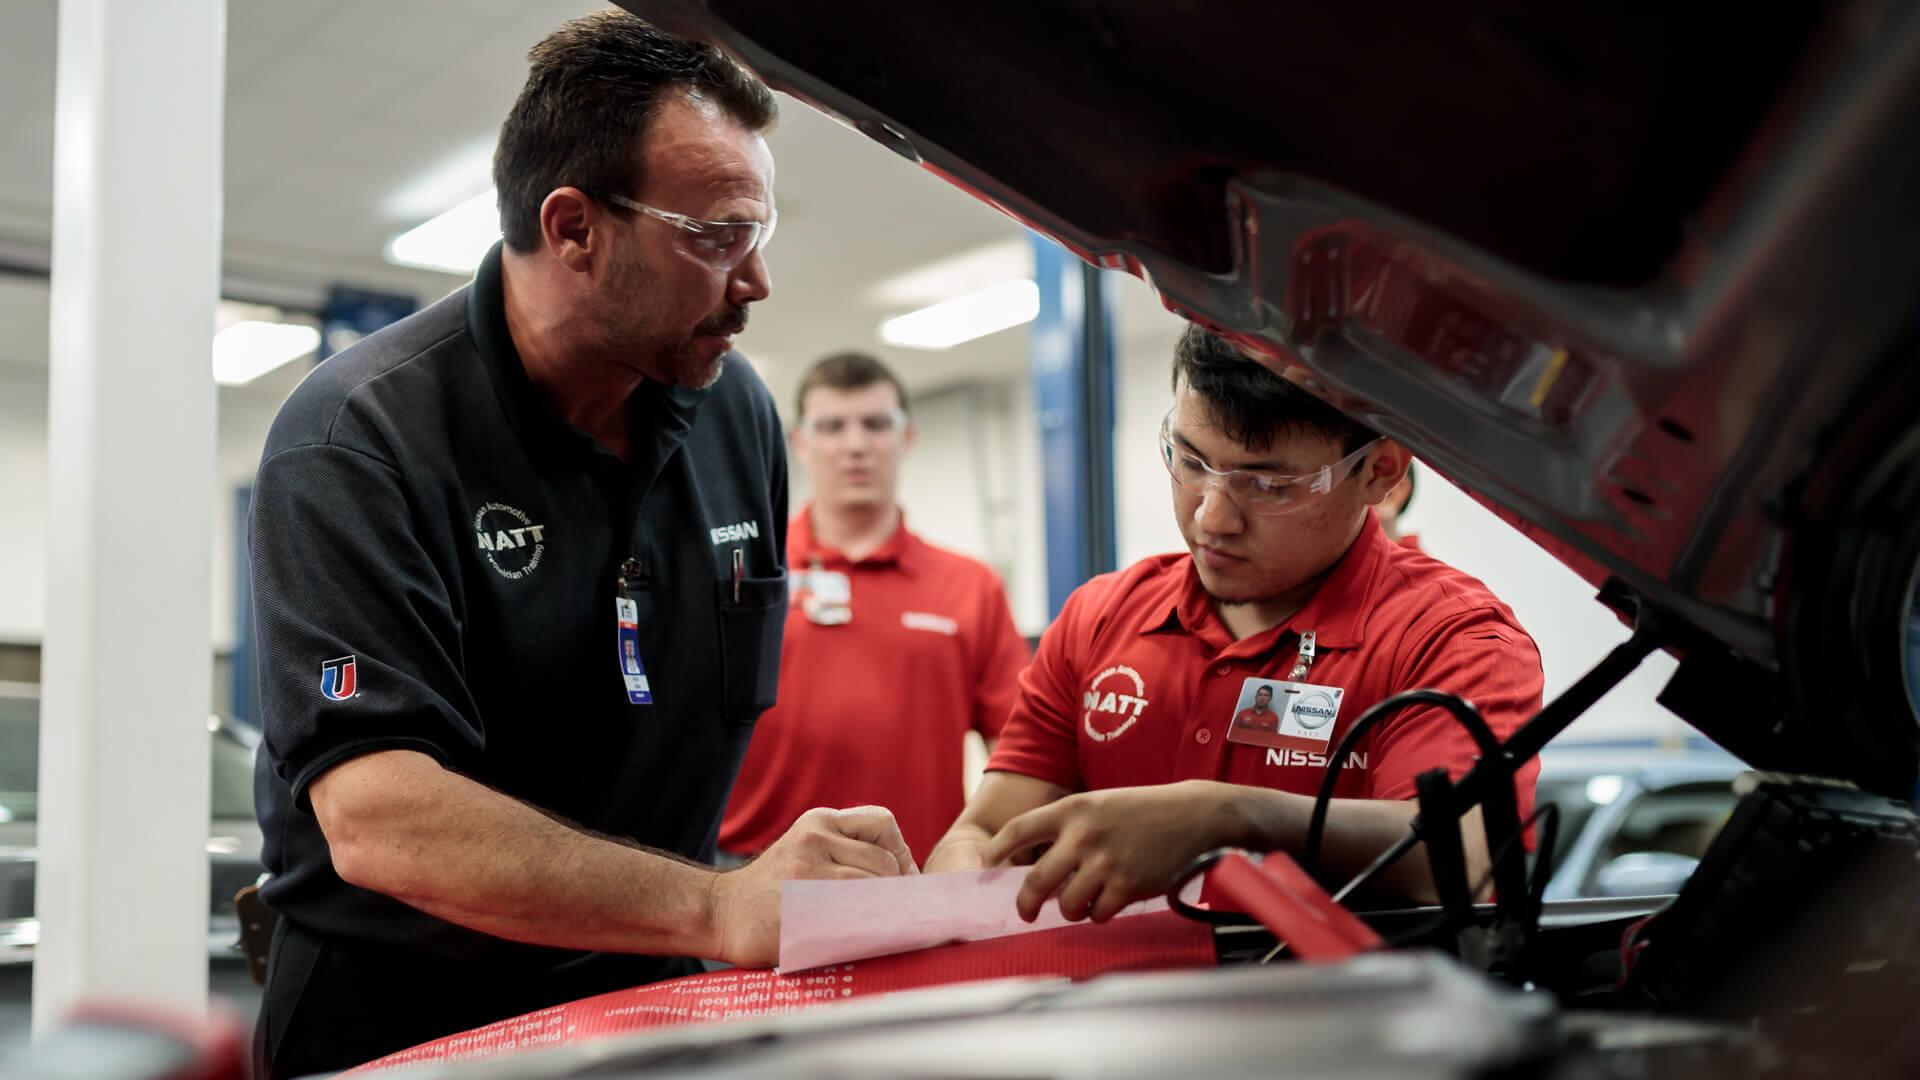 UTI Students and instructor working on the hood in the Nissan lab